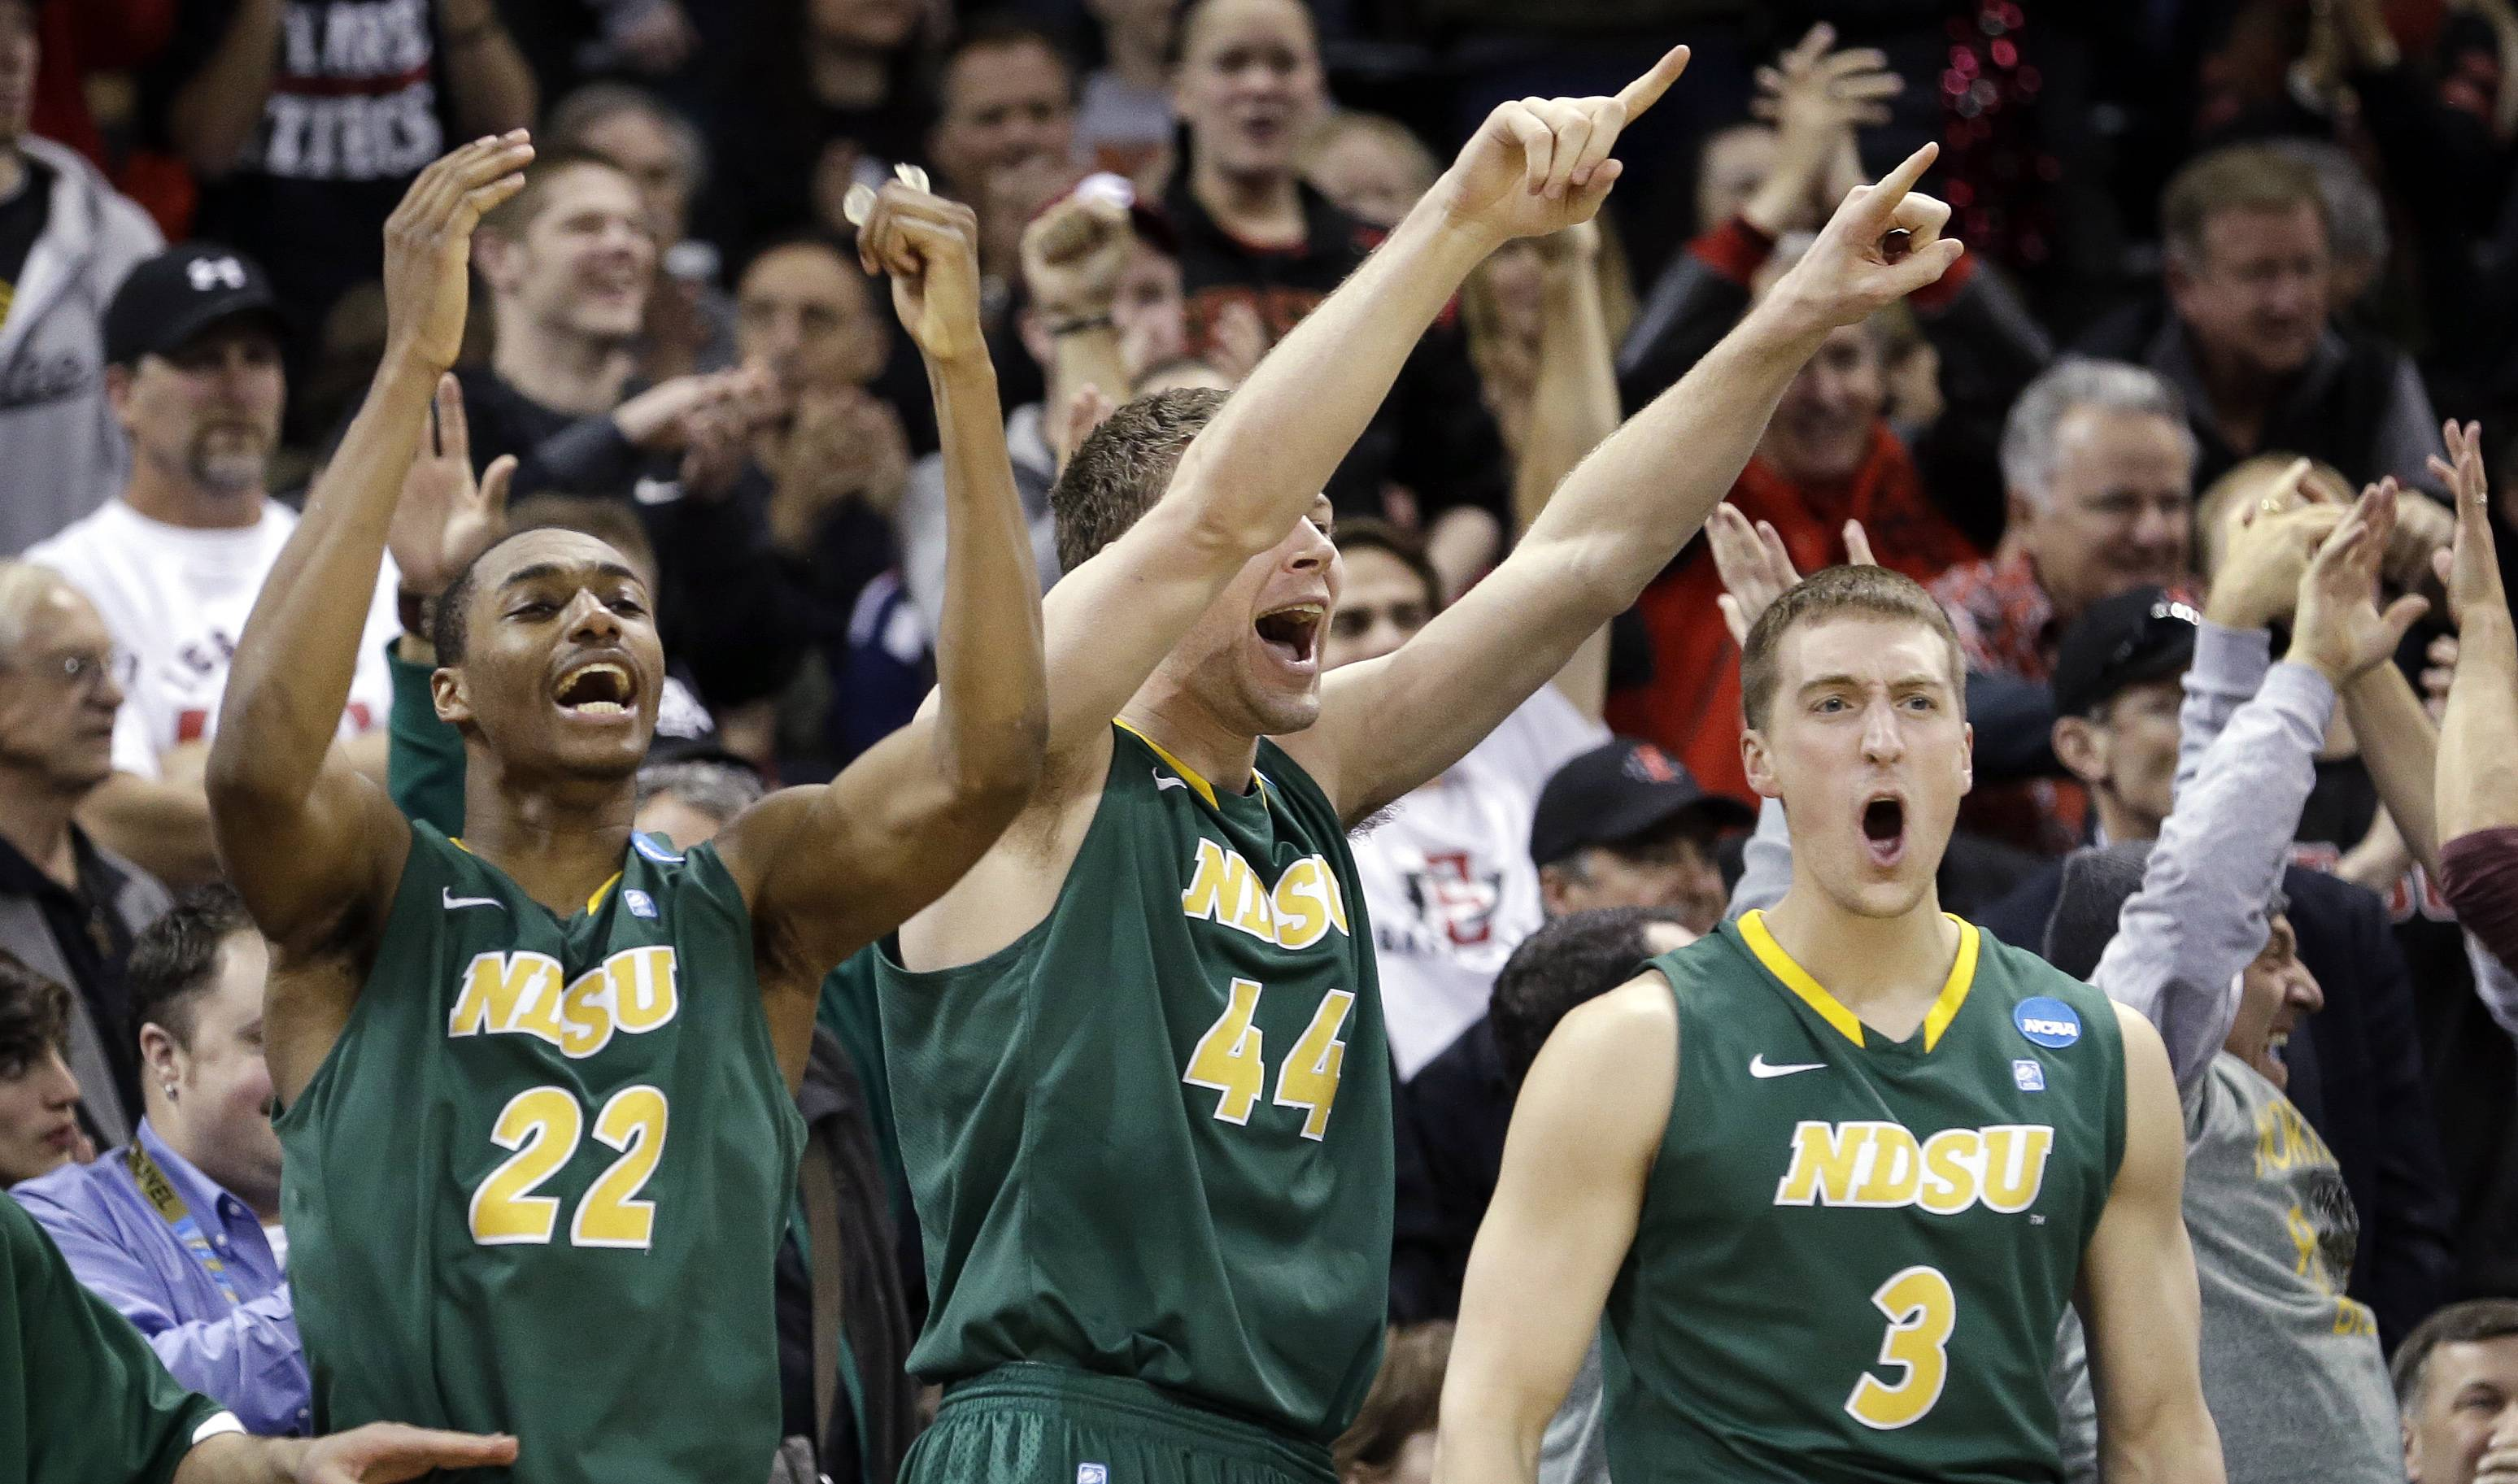 Players on the North Dakota State bench stand and cheer as their team takes the lead against Oklahoma in overtime during a second-round game of the NCAA men's college basketball tournament in Spokane, Wash., Thursday, March 20, 2014. North Dakota State won 80-75 in overtime.